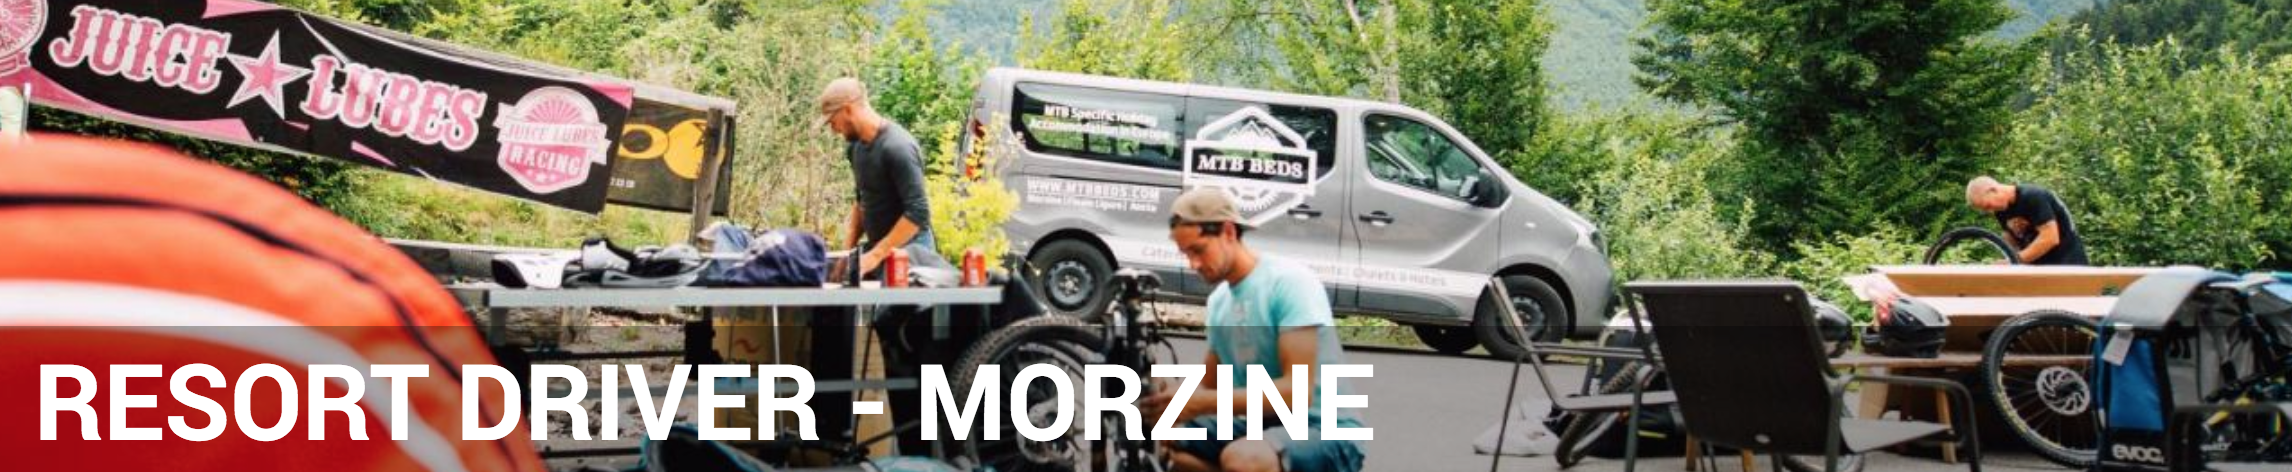 morzine resort driver job